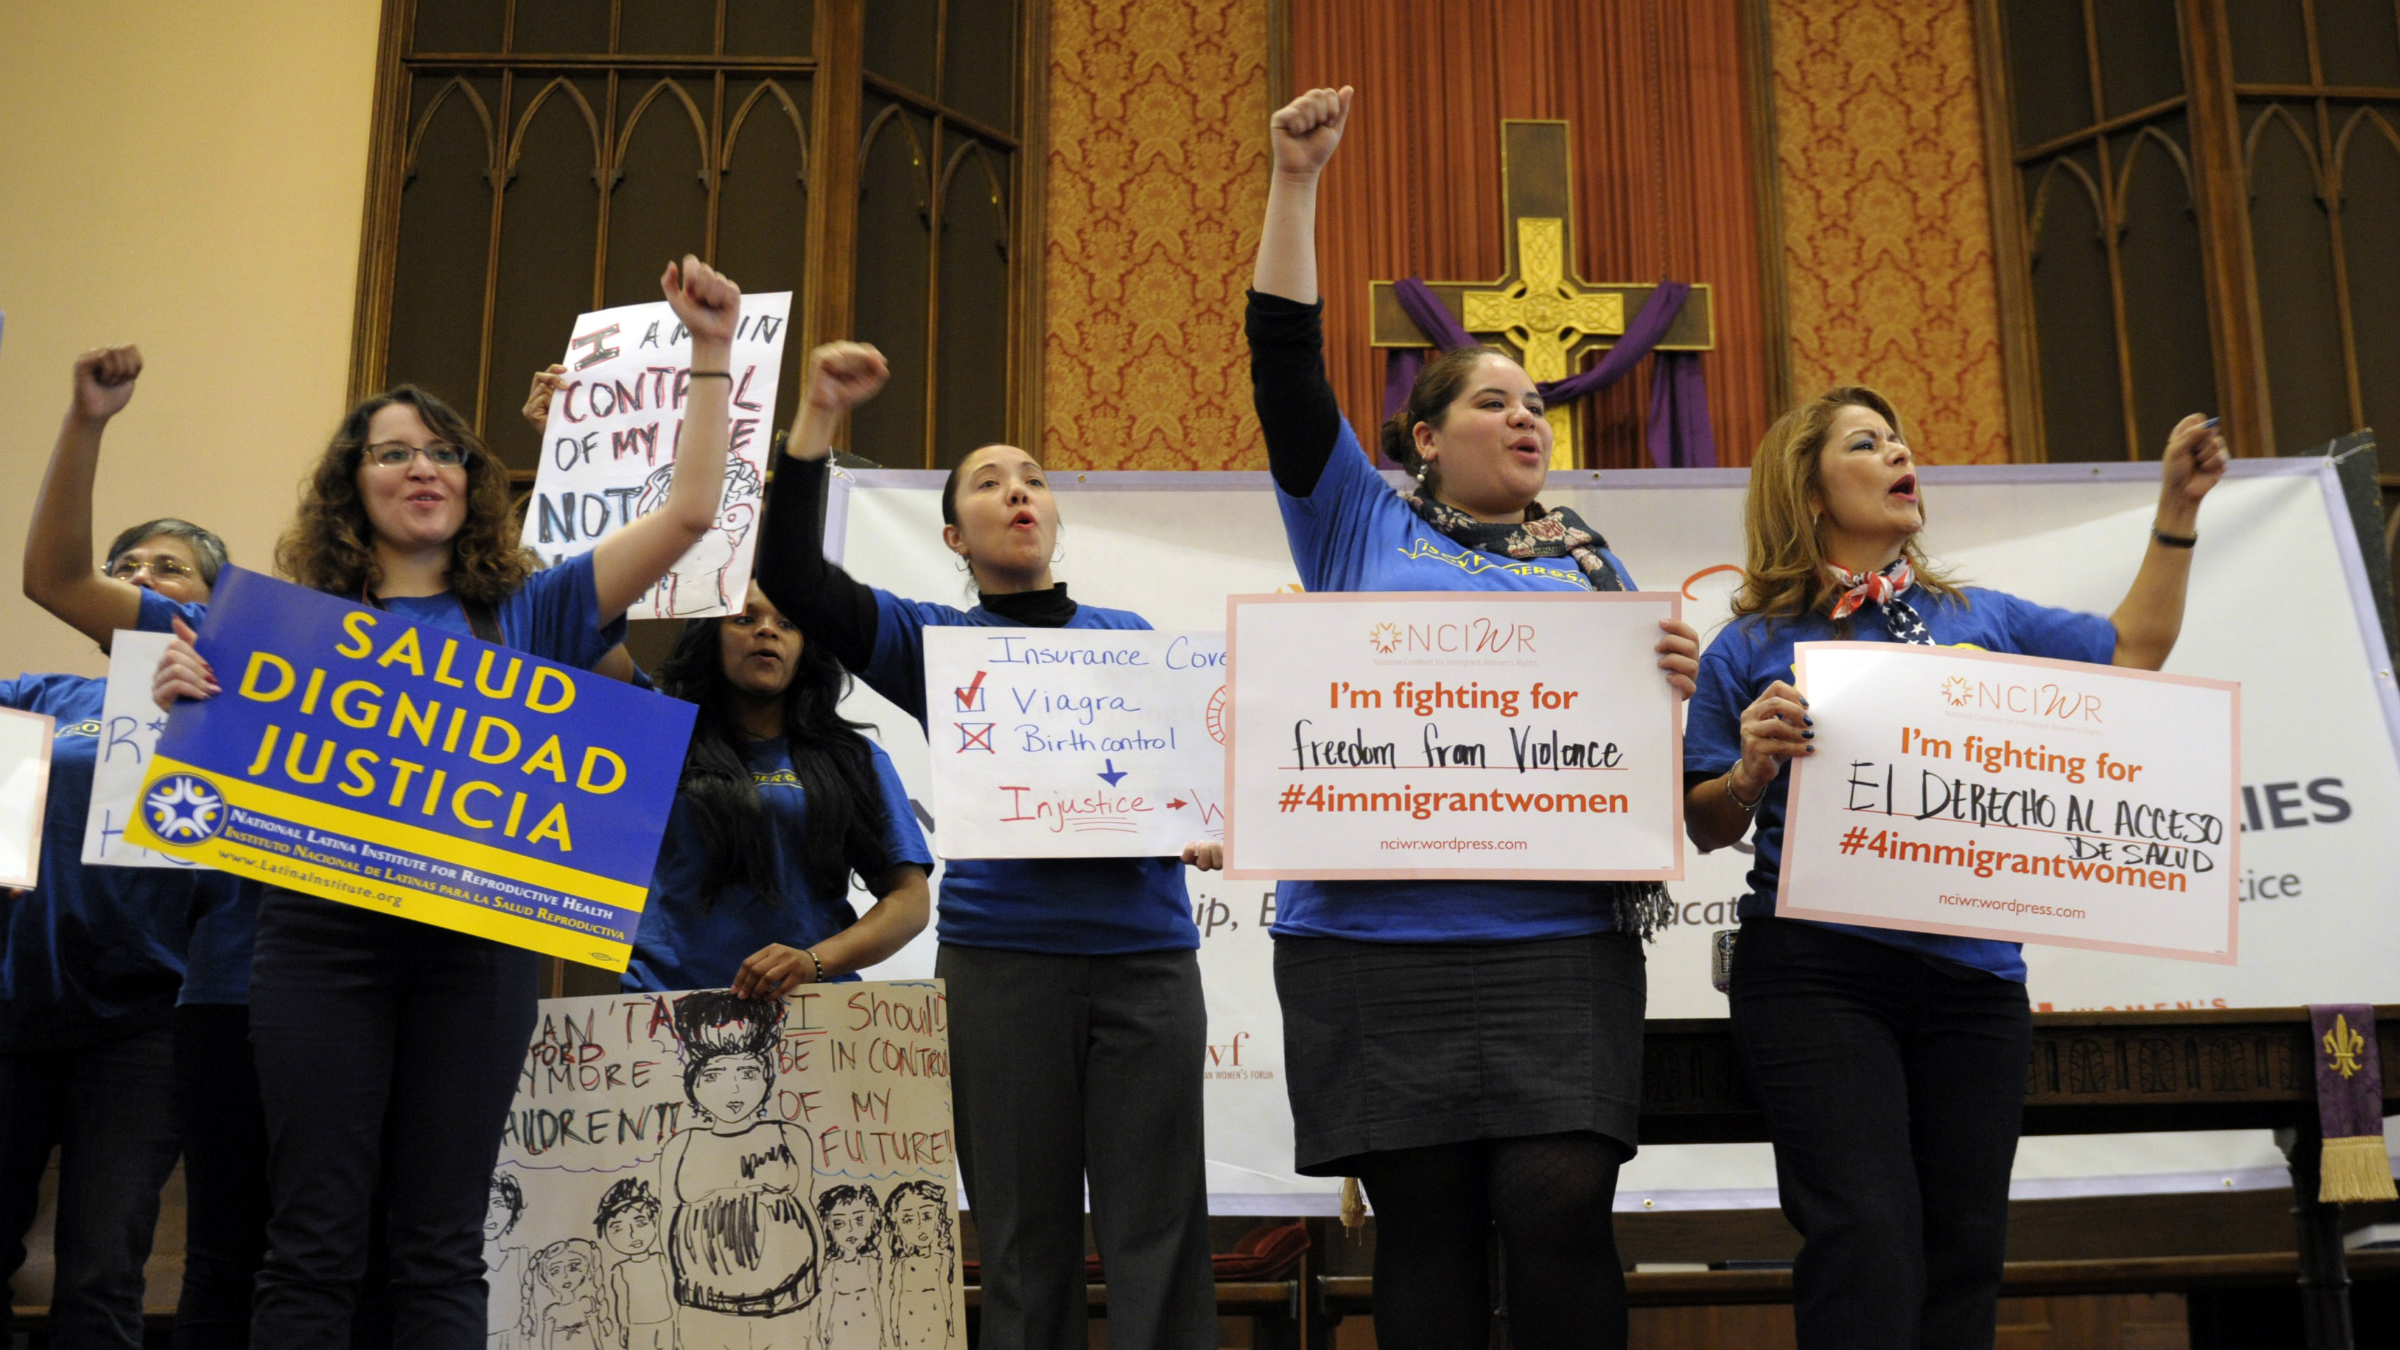 A coalition of women's groups participate in a rally supporting immigration reform on Monday, March 18, the day of Karen Panetta's Senate hearing.